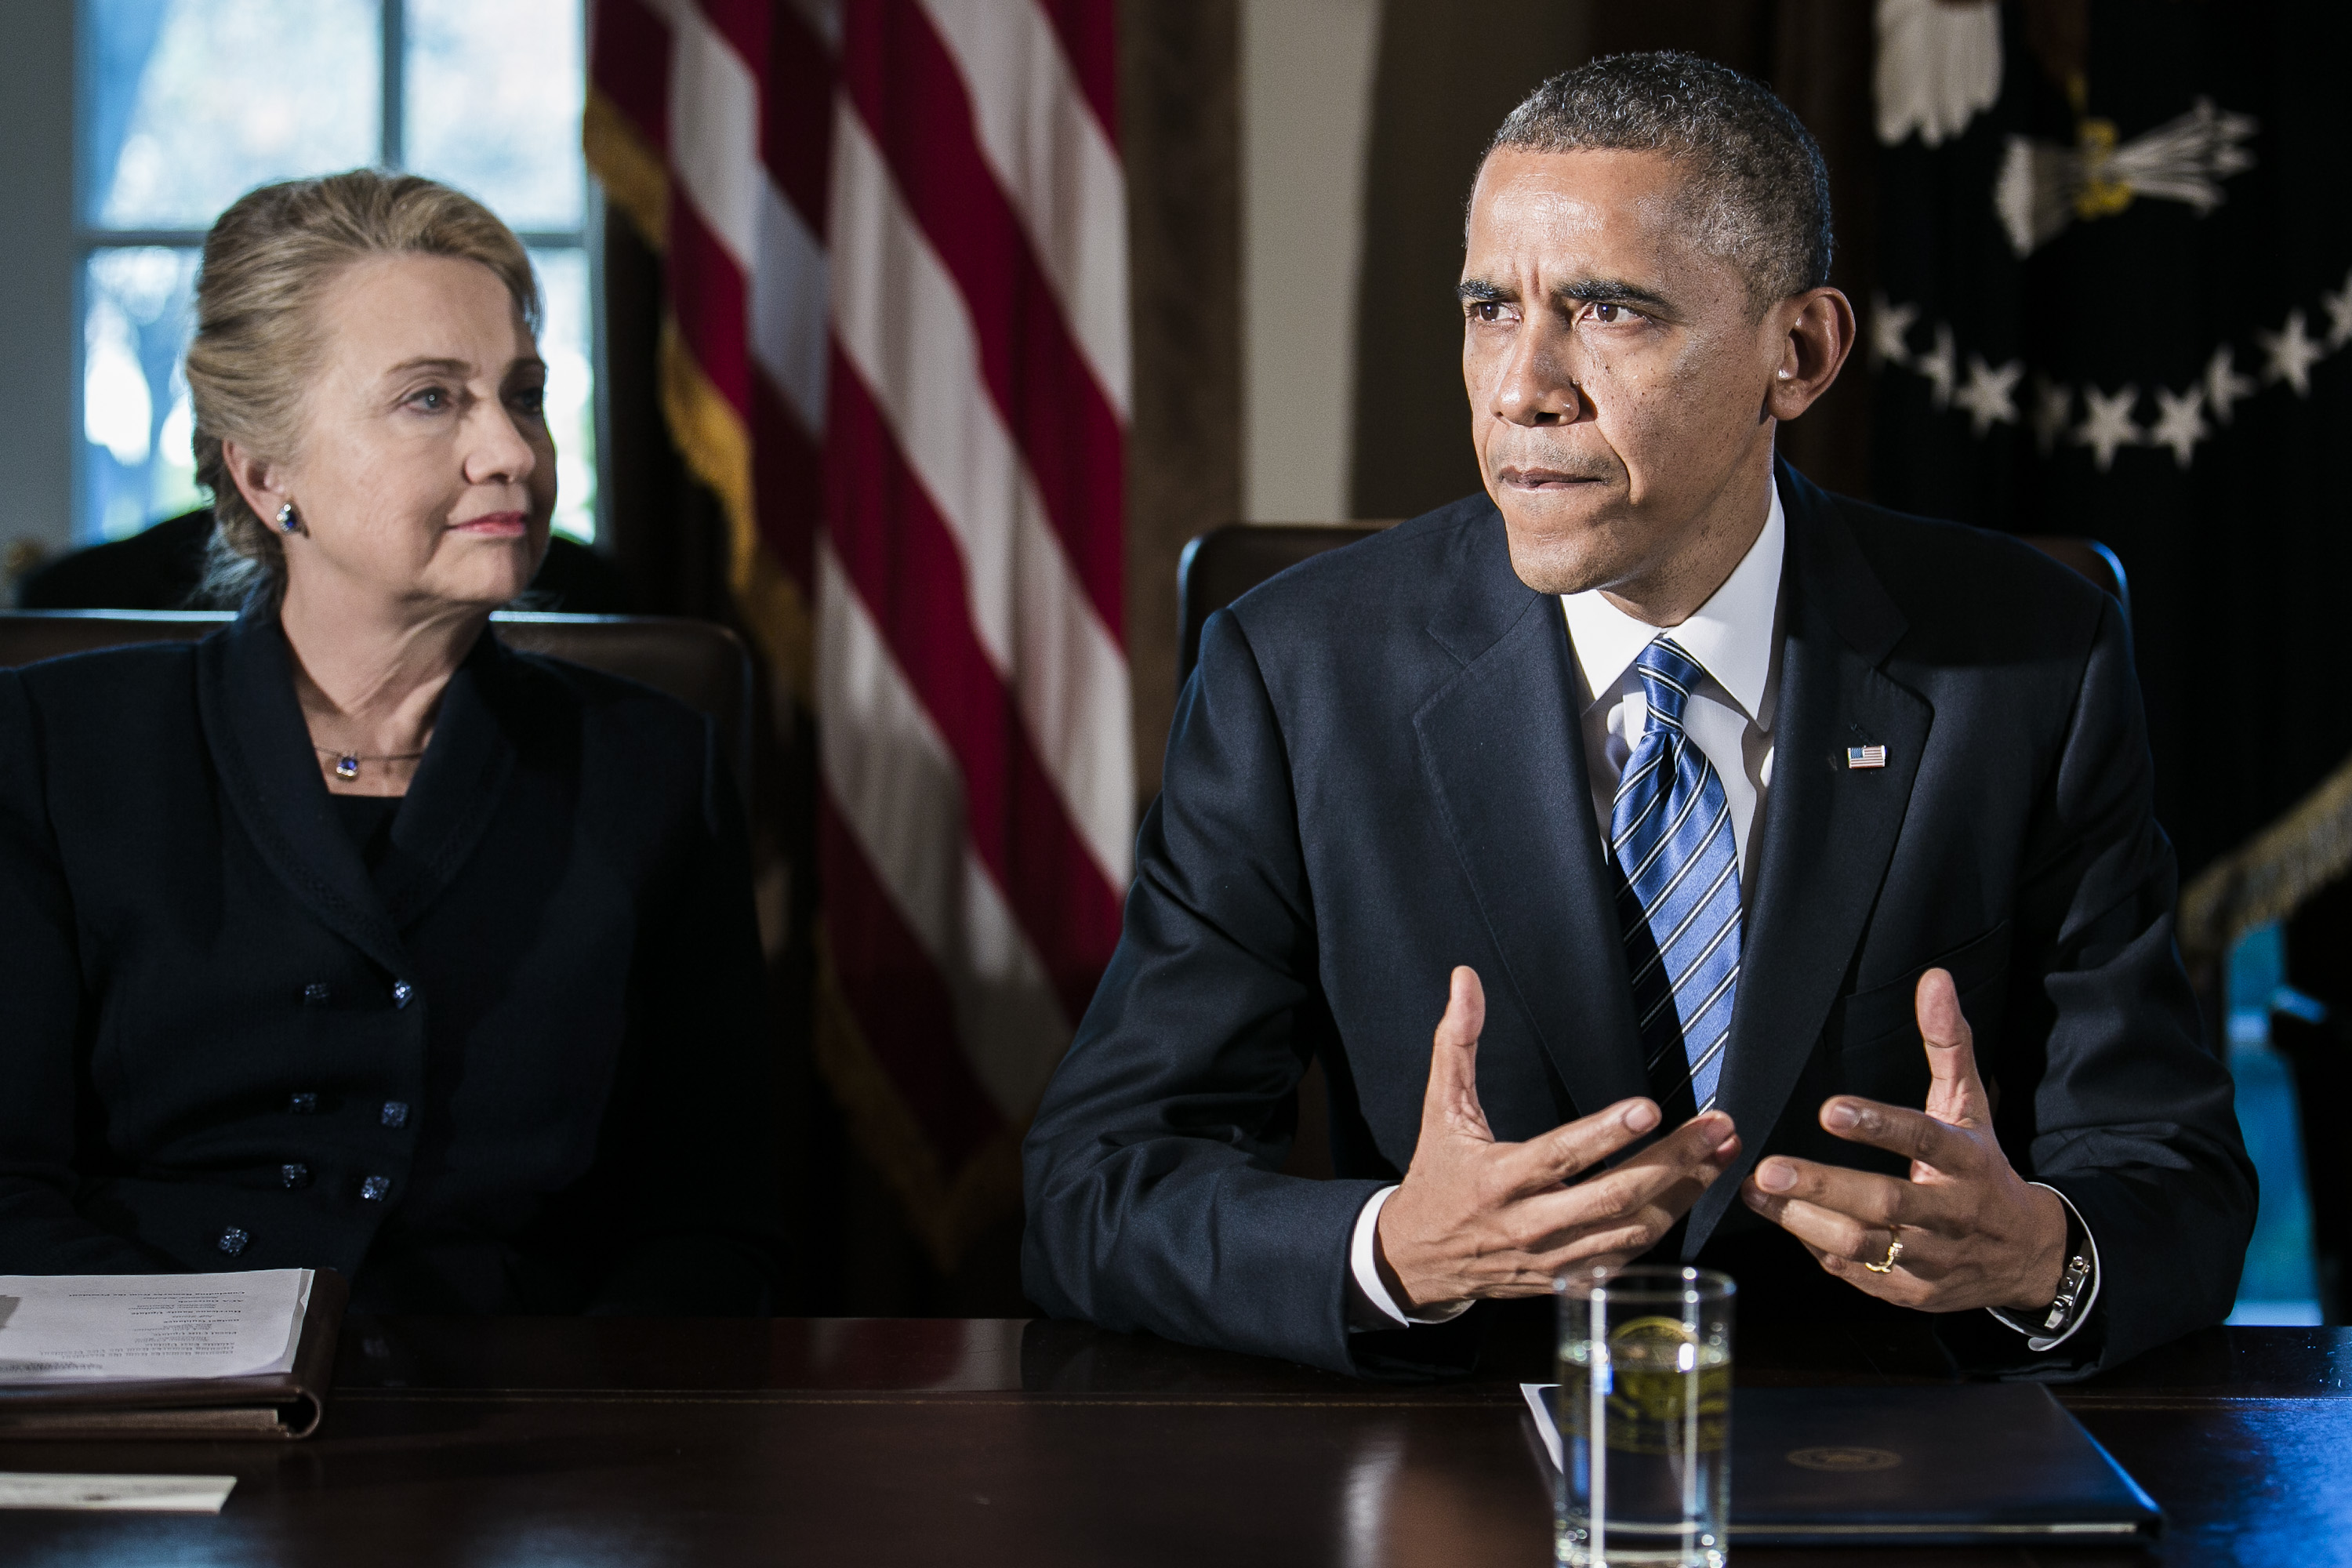 U.S. President Barack Obama, right, speaks as Department of State Secretary Hillary Clinton listens at a cabinet meeting at the White House on Nov. 28, 2012 in Washington, D.C. The president met yesterday with small business owners and today with the chief executives of major corporations in ongoing talks about the looming fiscal cliff.Photographer: T.J. Kirkpatrick/Bloomberg